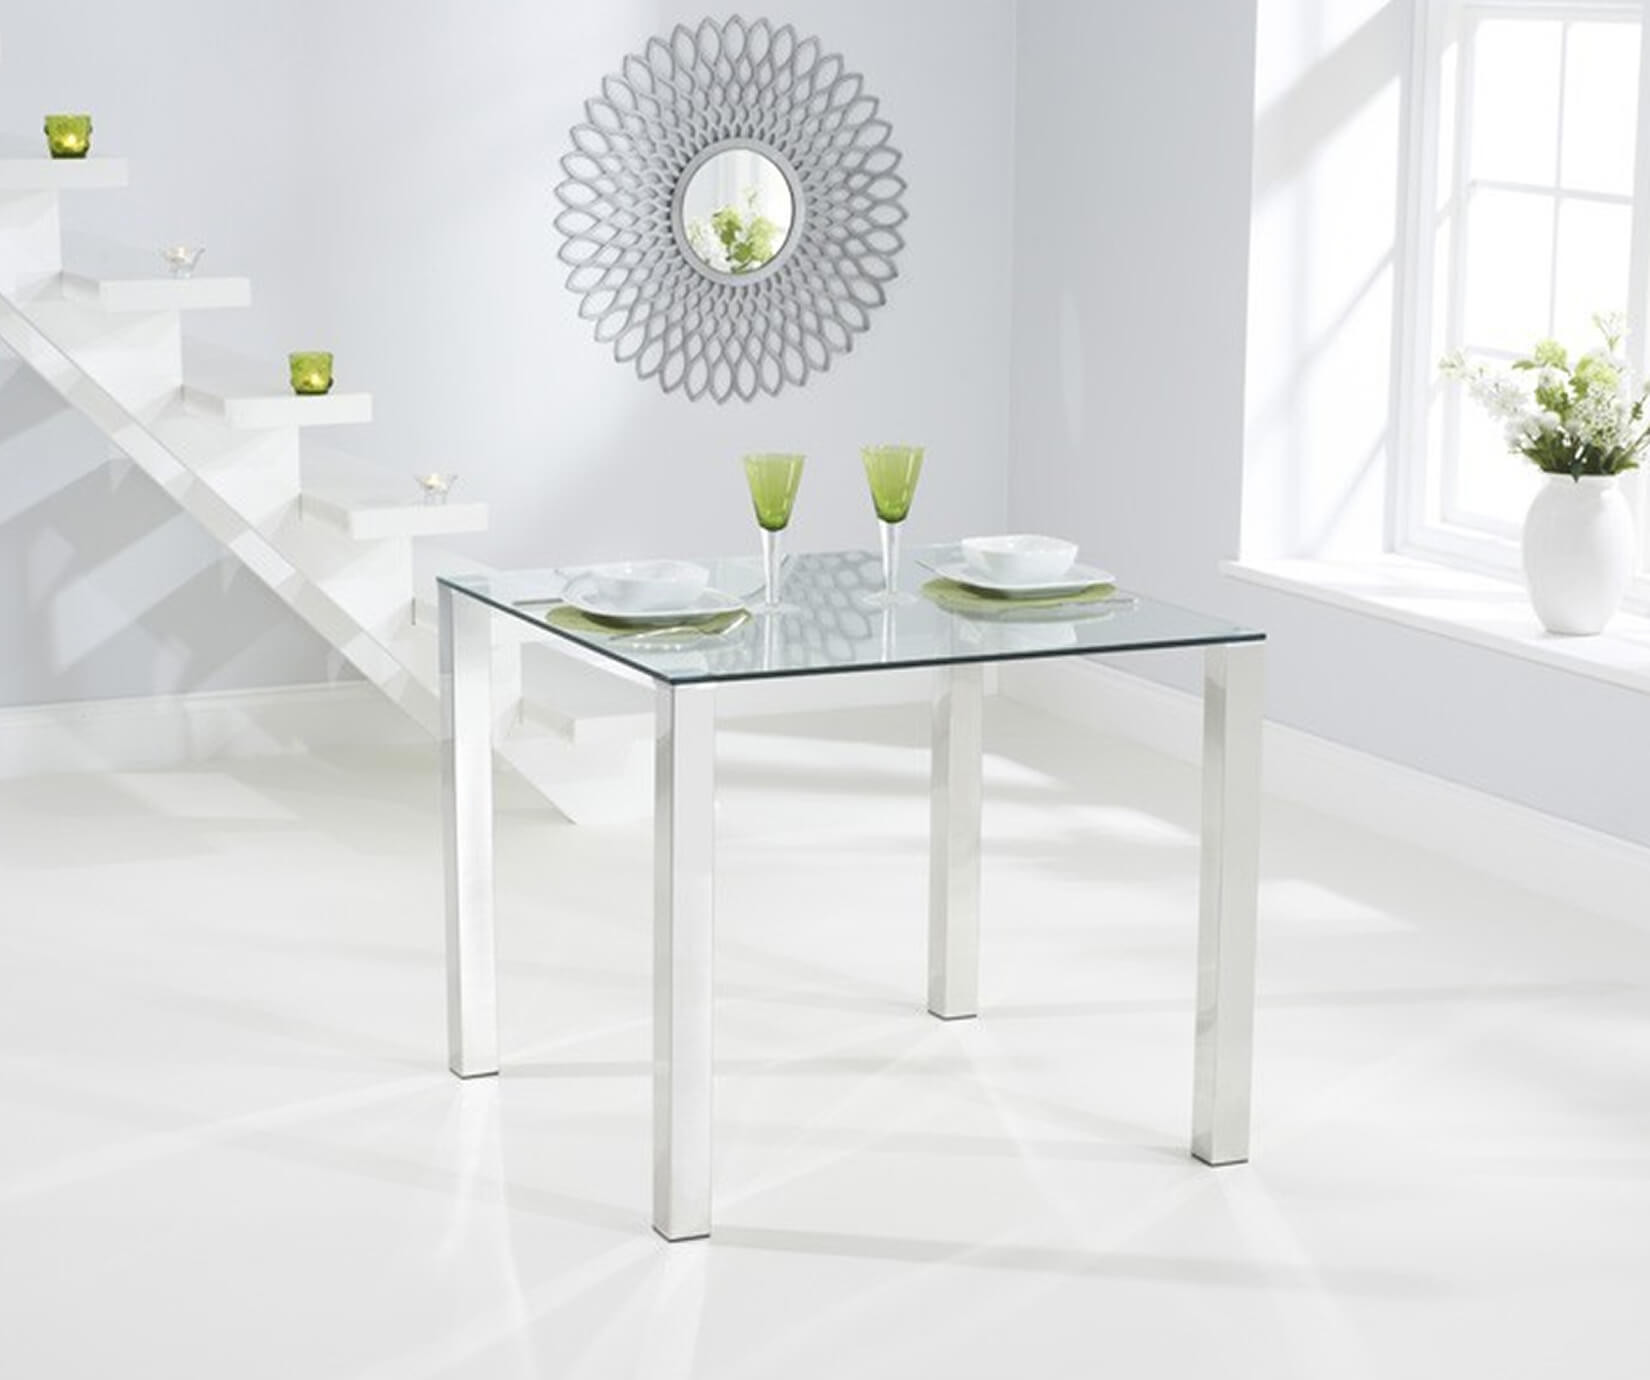 small-glass-dining-table-incredible-latest-design-tables-furniture-direct-uk-inside-18.jpg